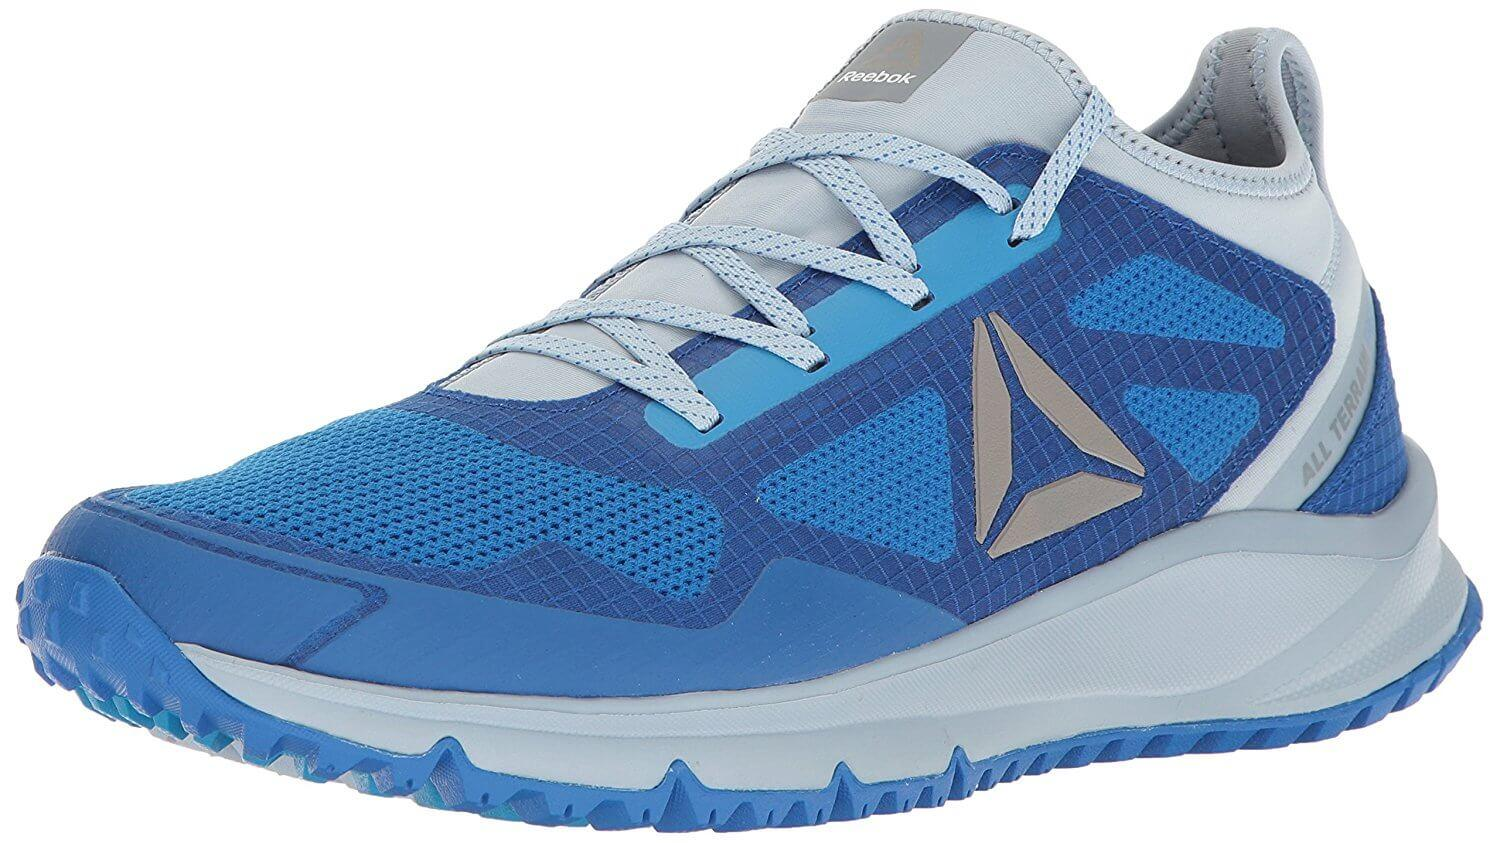 211620e4c5c The Reebok All Terrain Freedom is a unique trail shoe ...